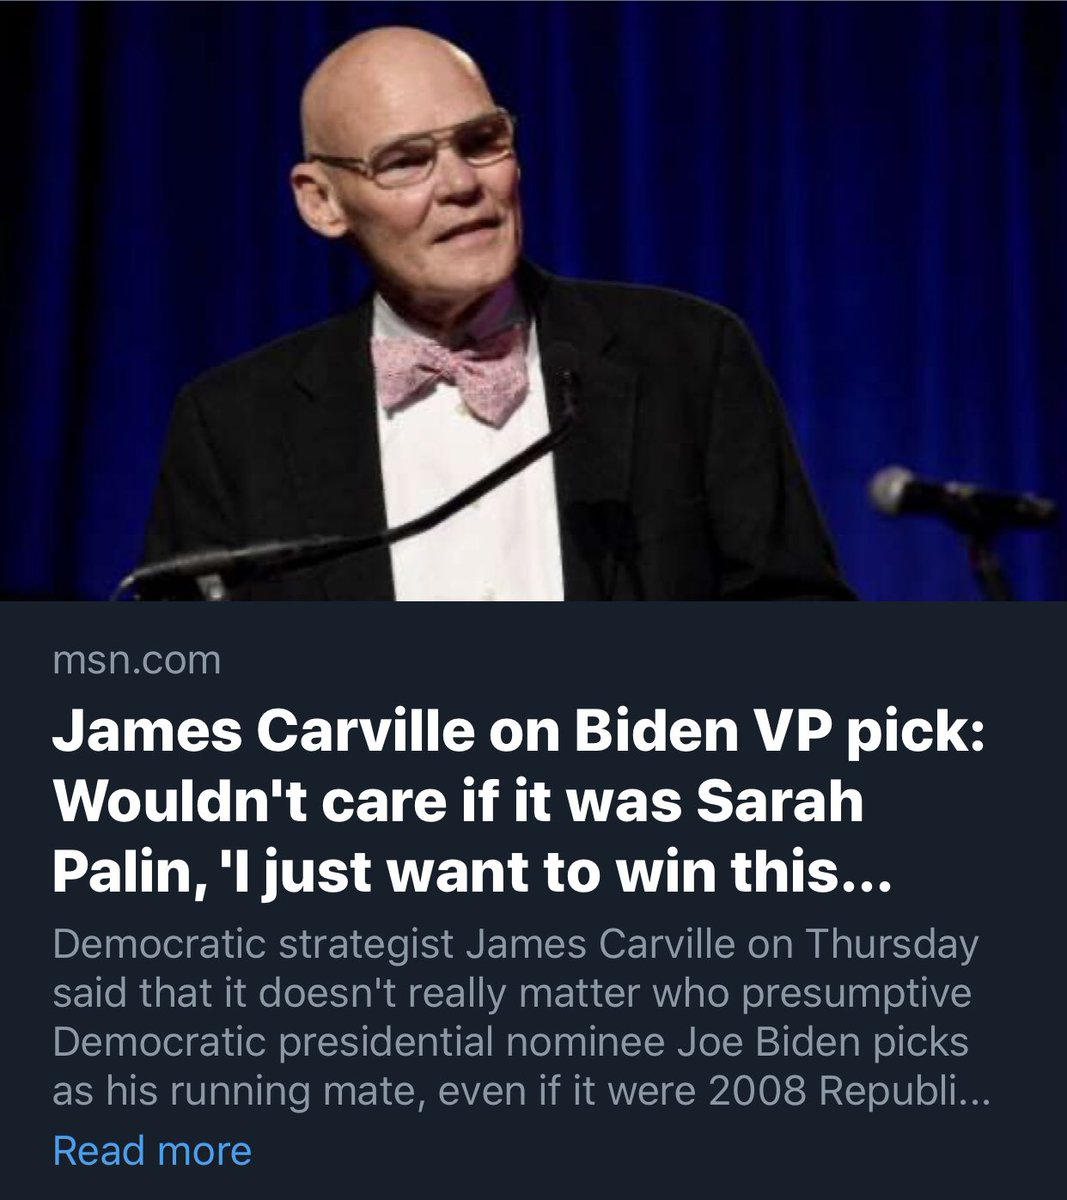 Siri, show me a perfect encapsulation of everything wrong with Democrats in one image...